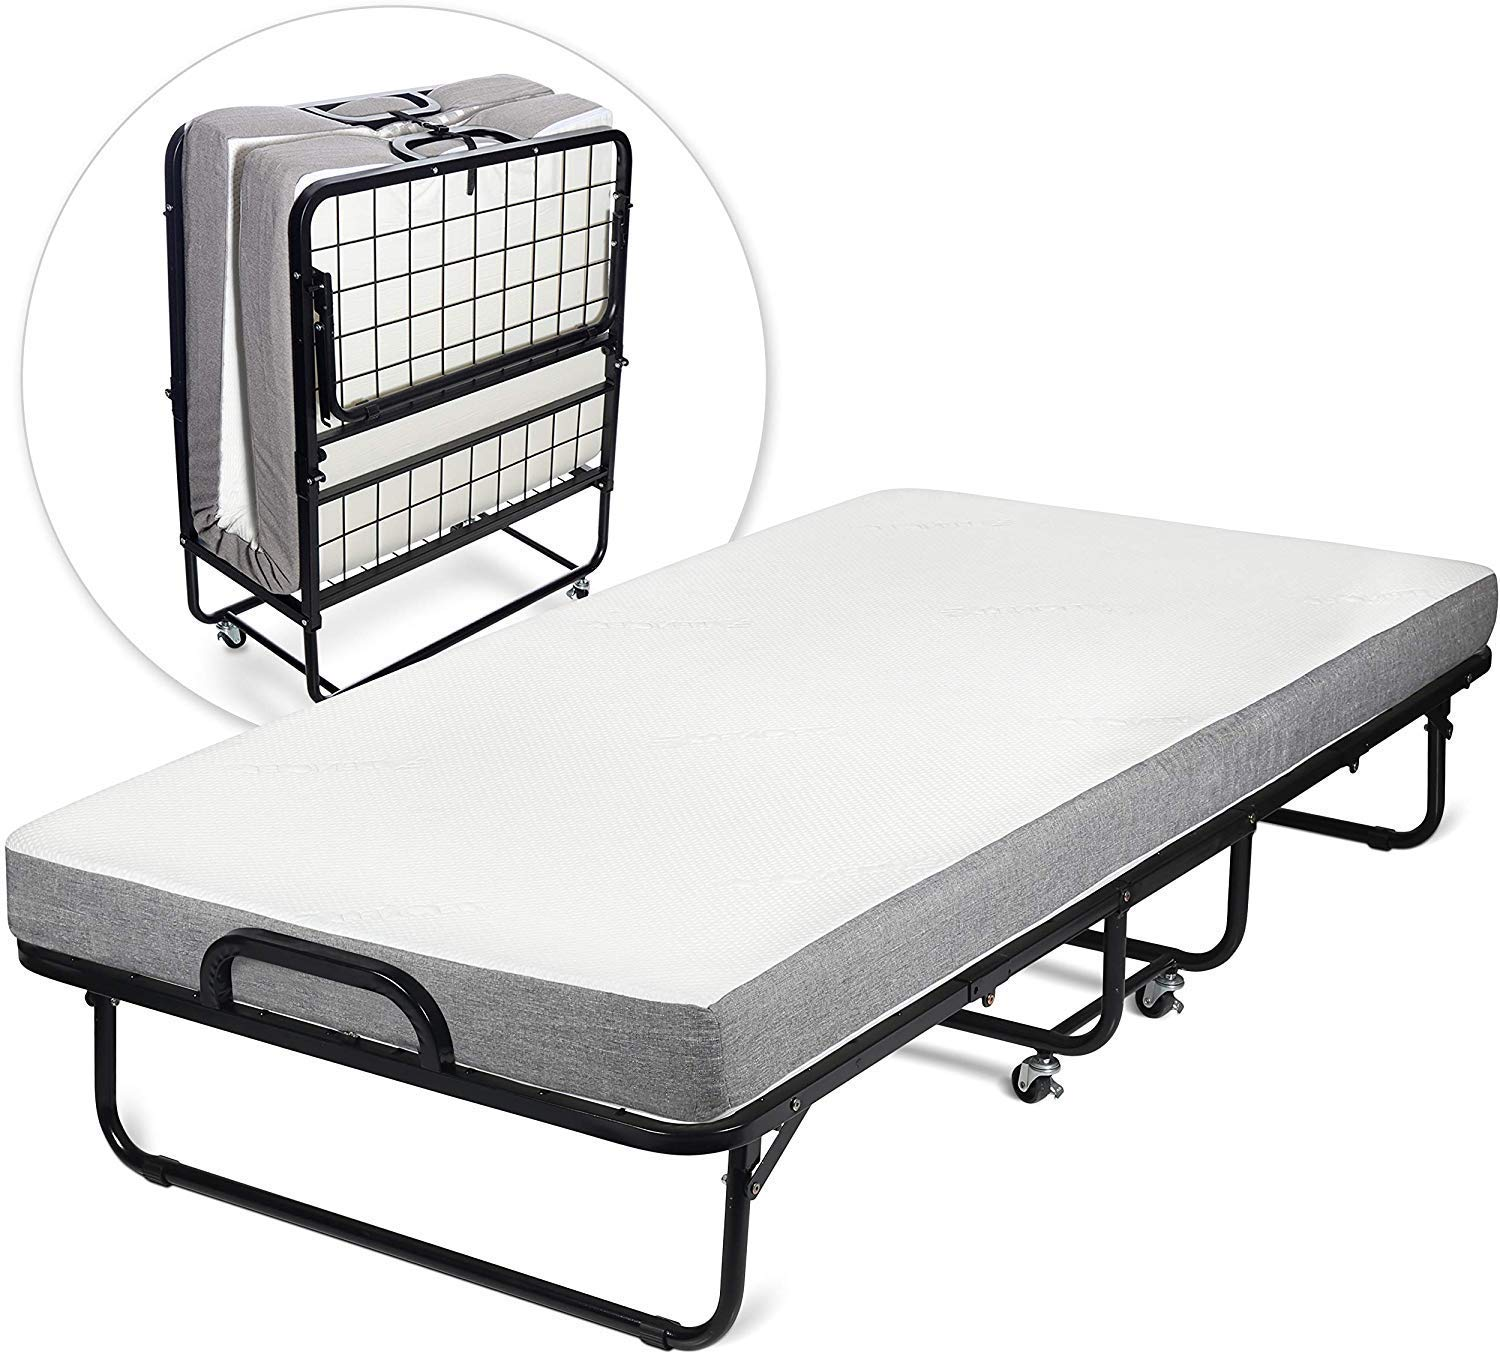 Top 10 Best Folding Beds In 2020 Buying Guide Reviews